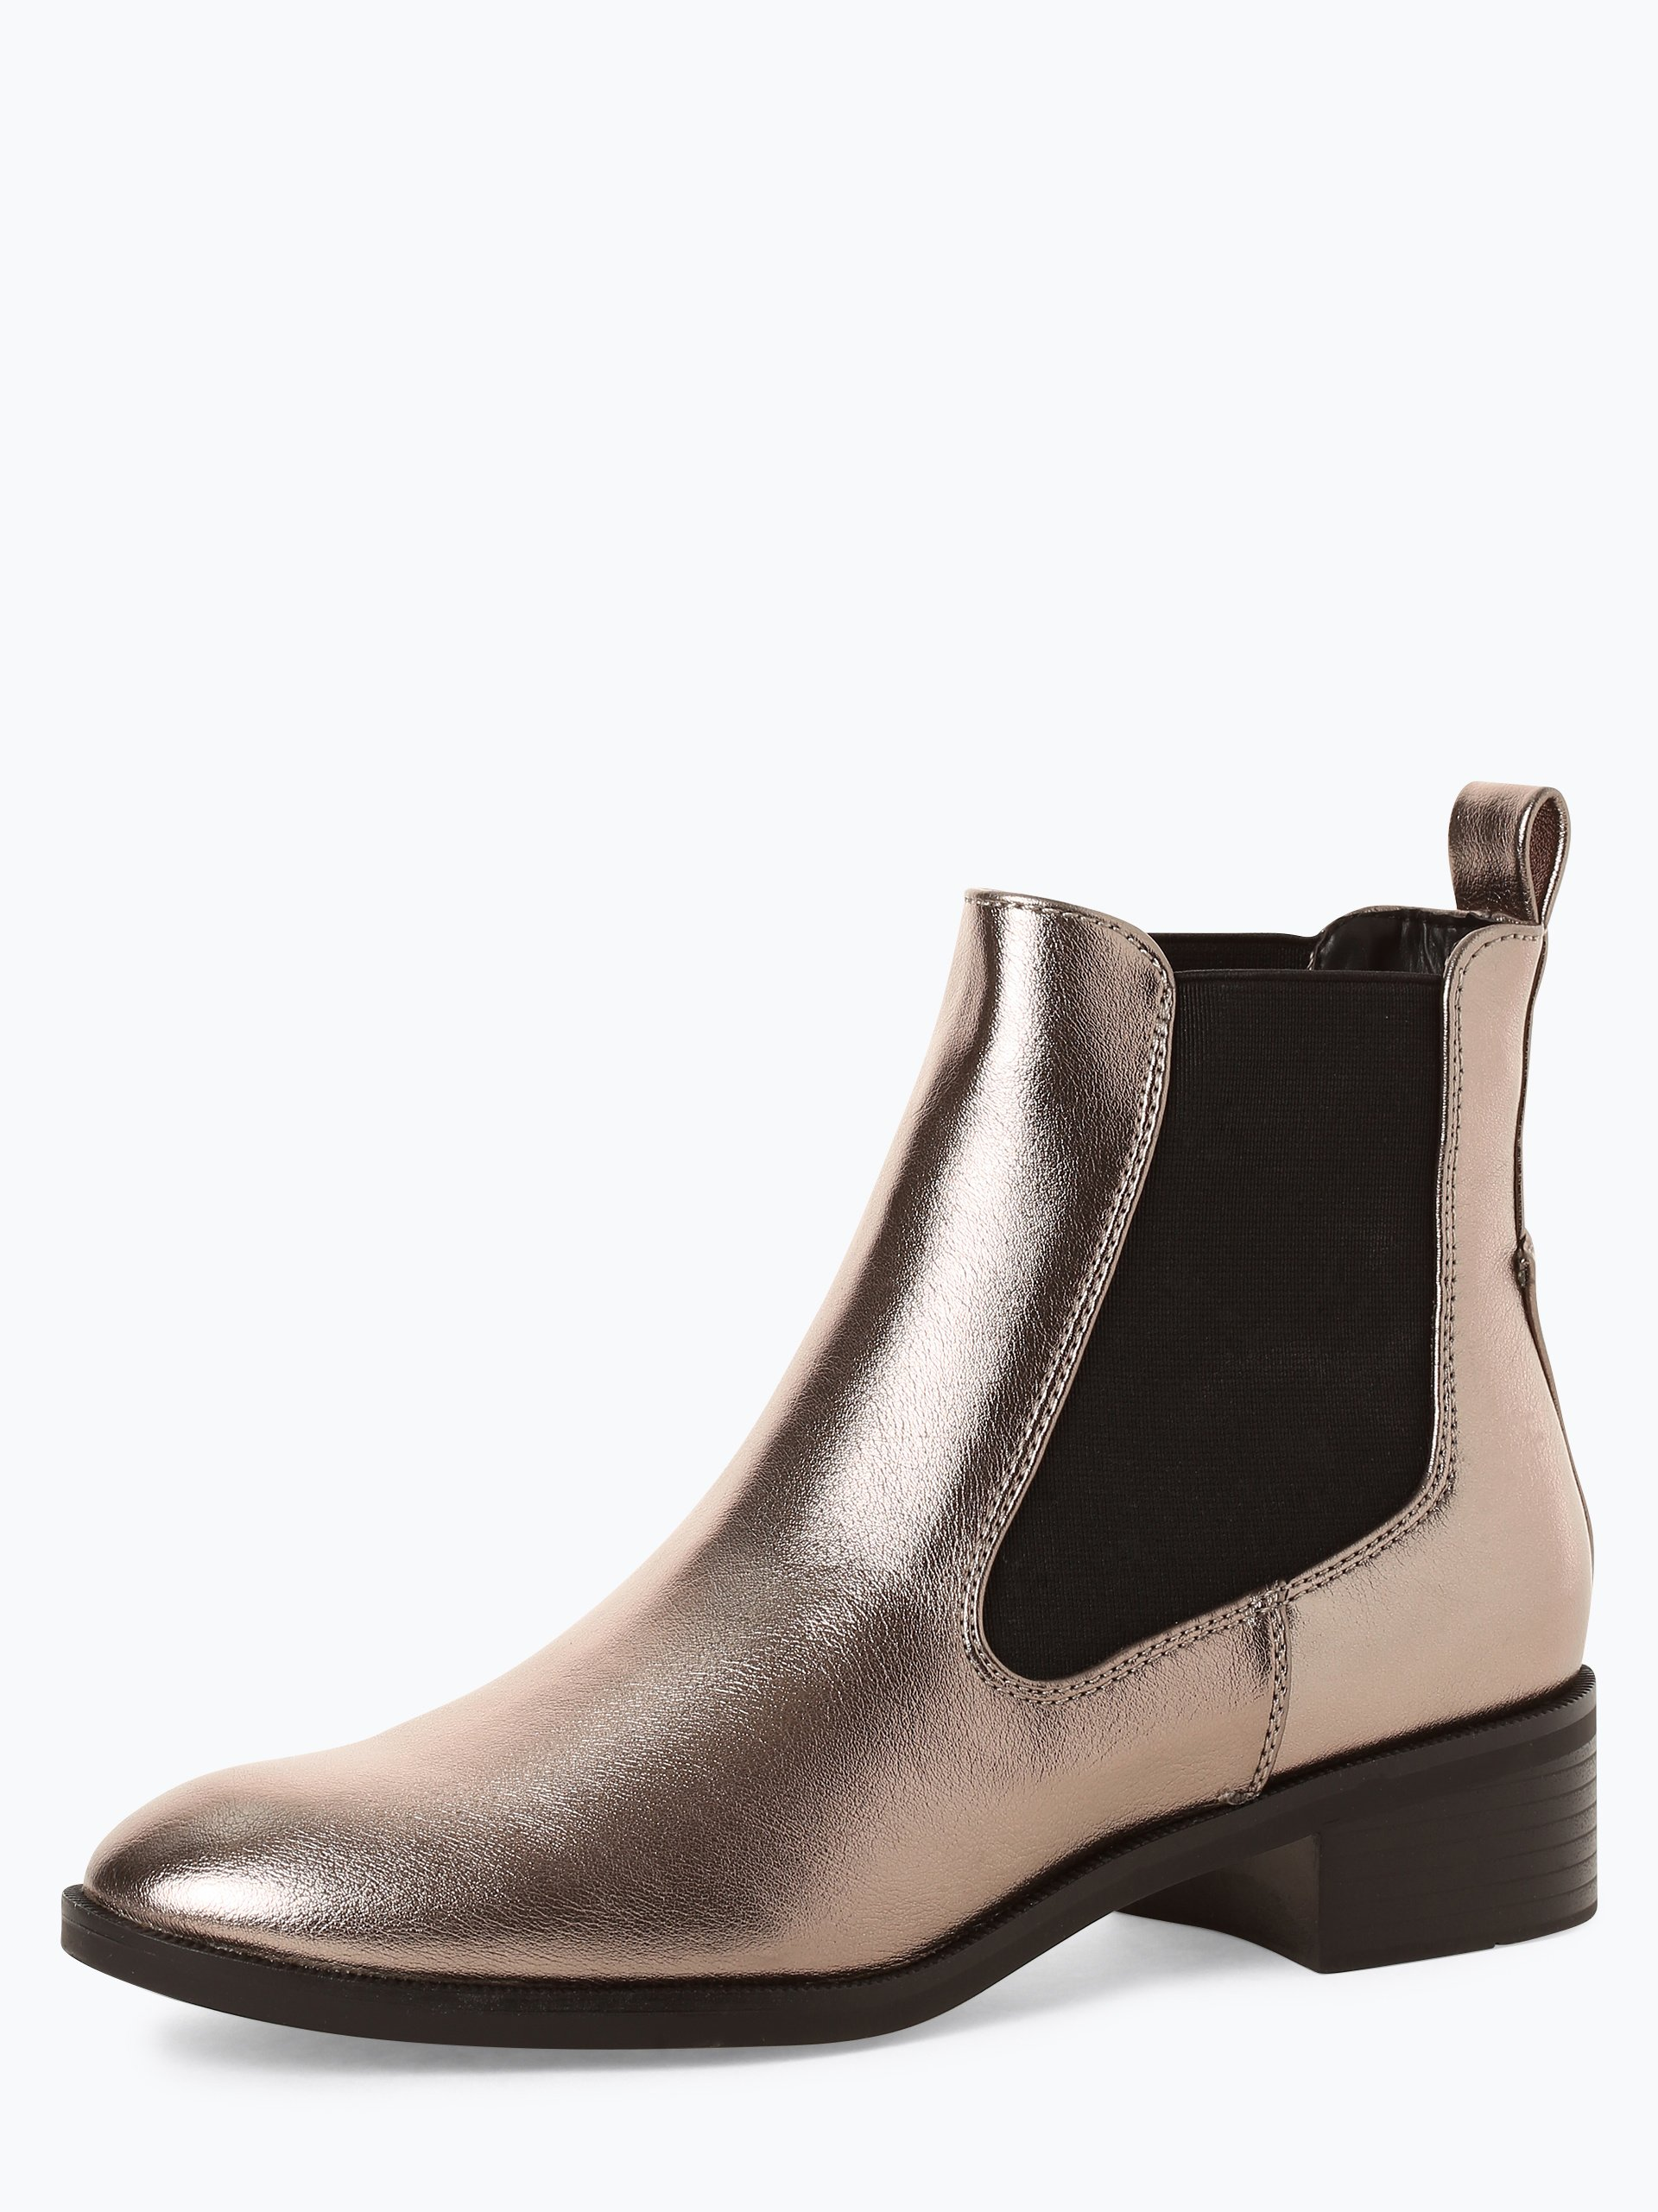 ONLY Damen Stiefeletten